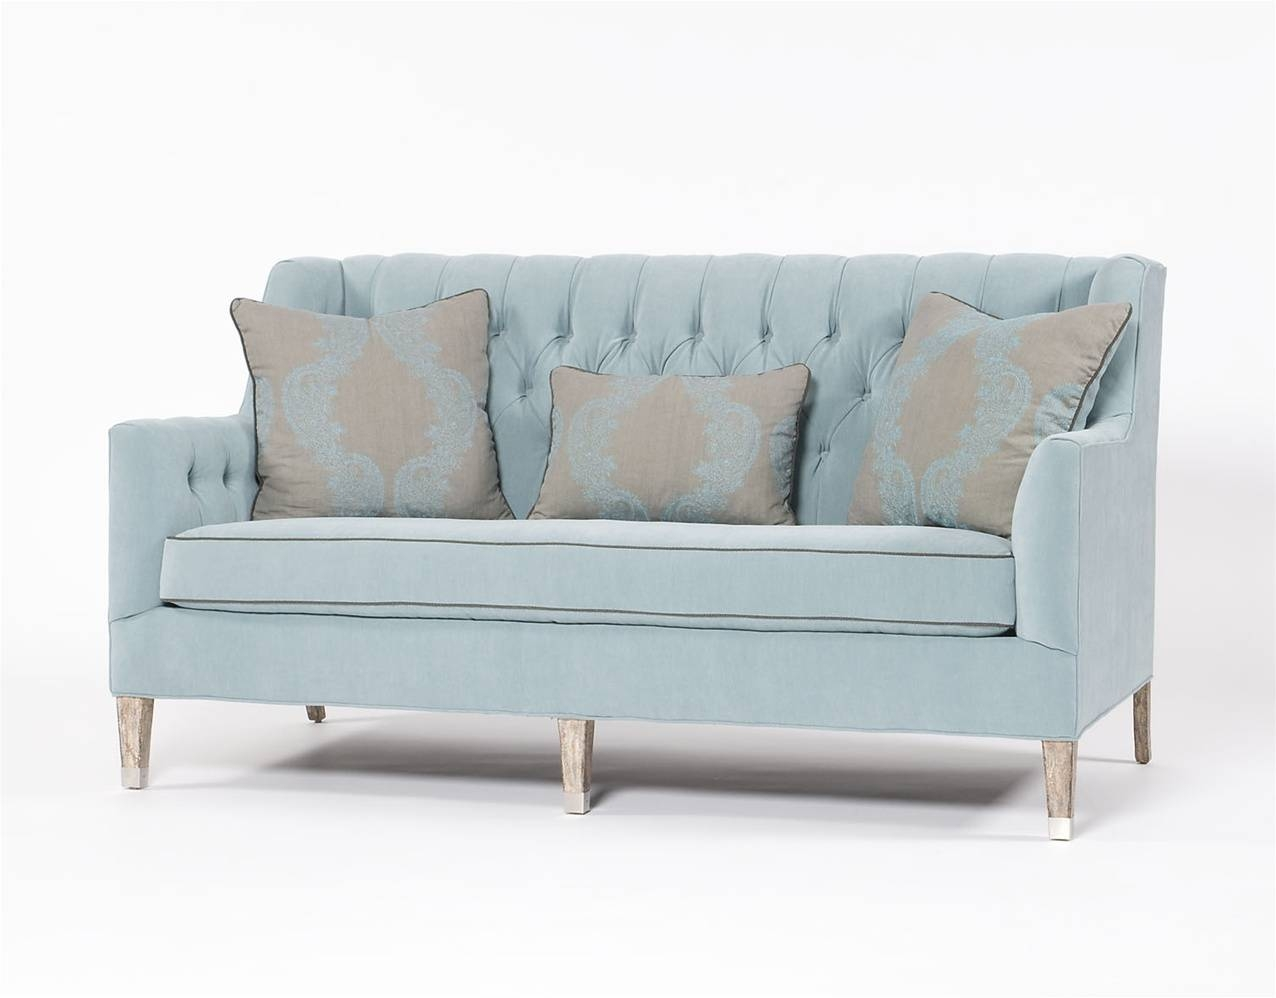 Traditional Sofa Tufted Blue Three Person Couch for Blue Tufted Sofas (Image 29 of 30)